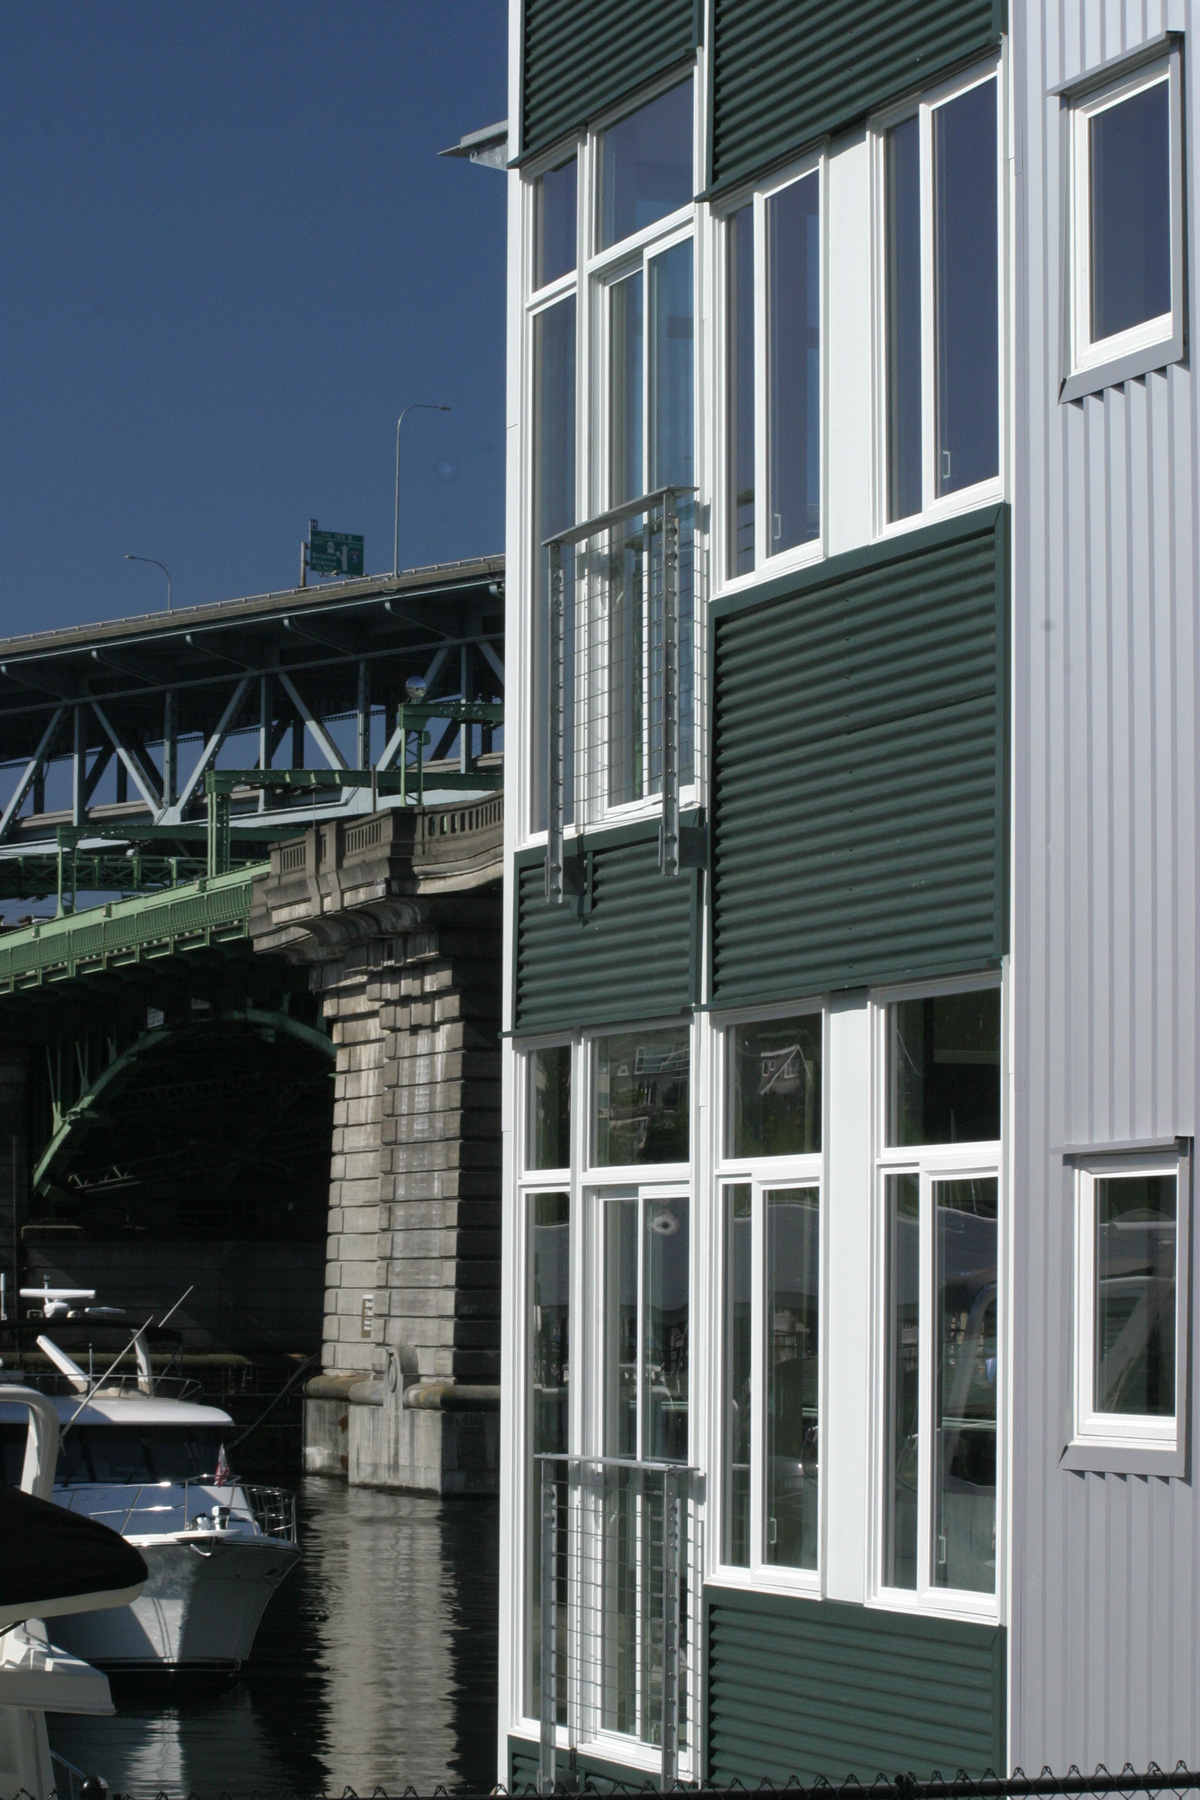 Boat Street Landing building waterfront bridge and boats